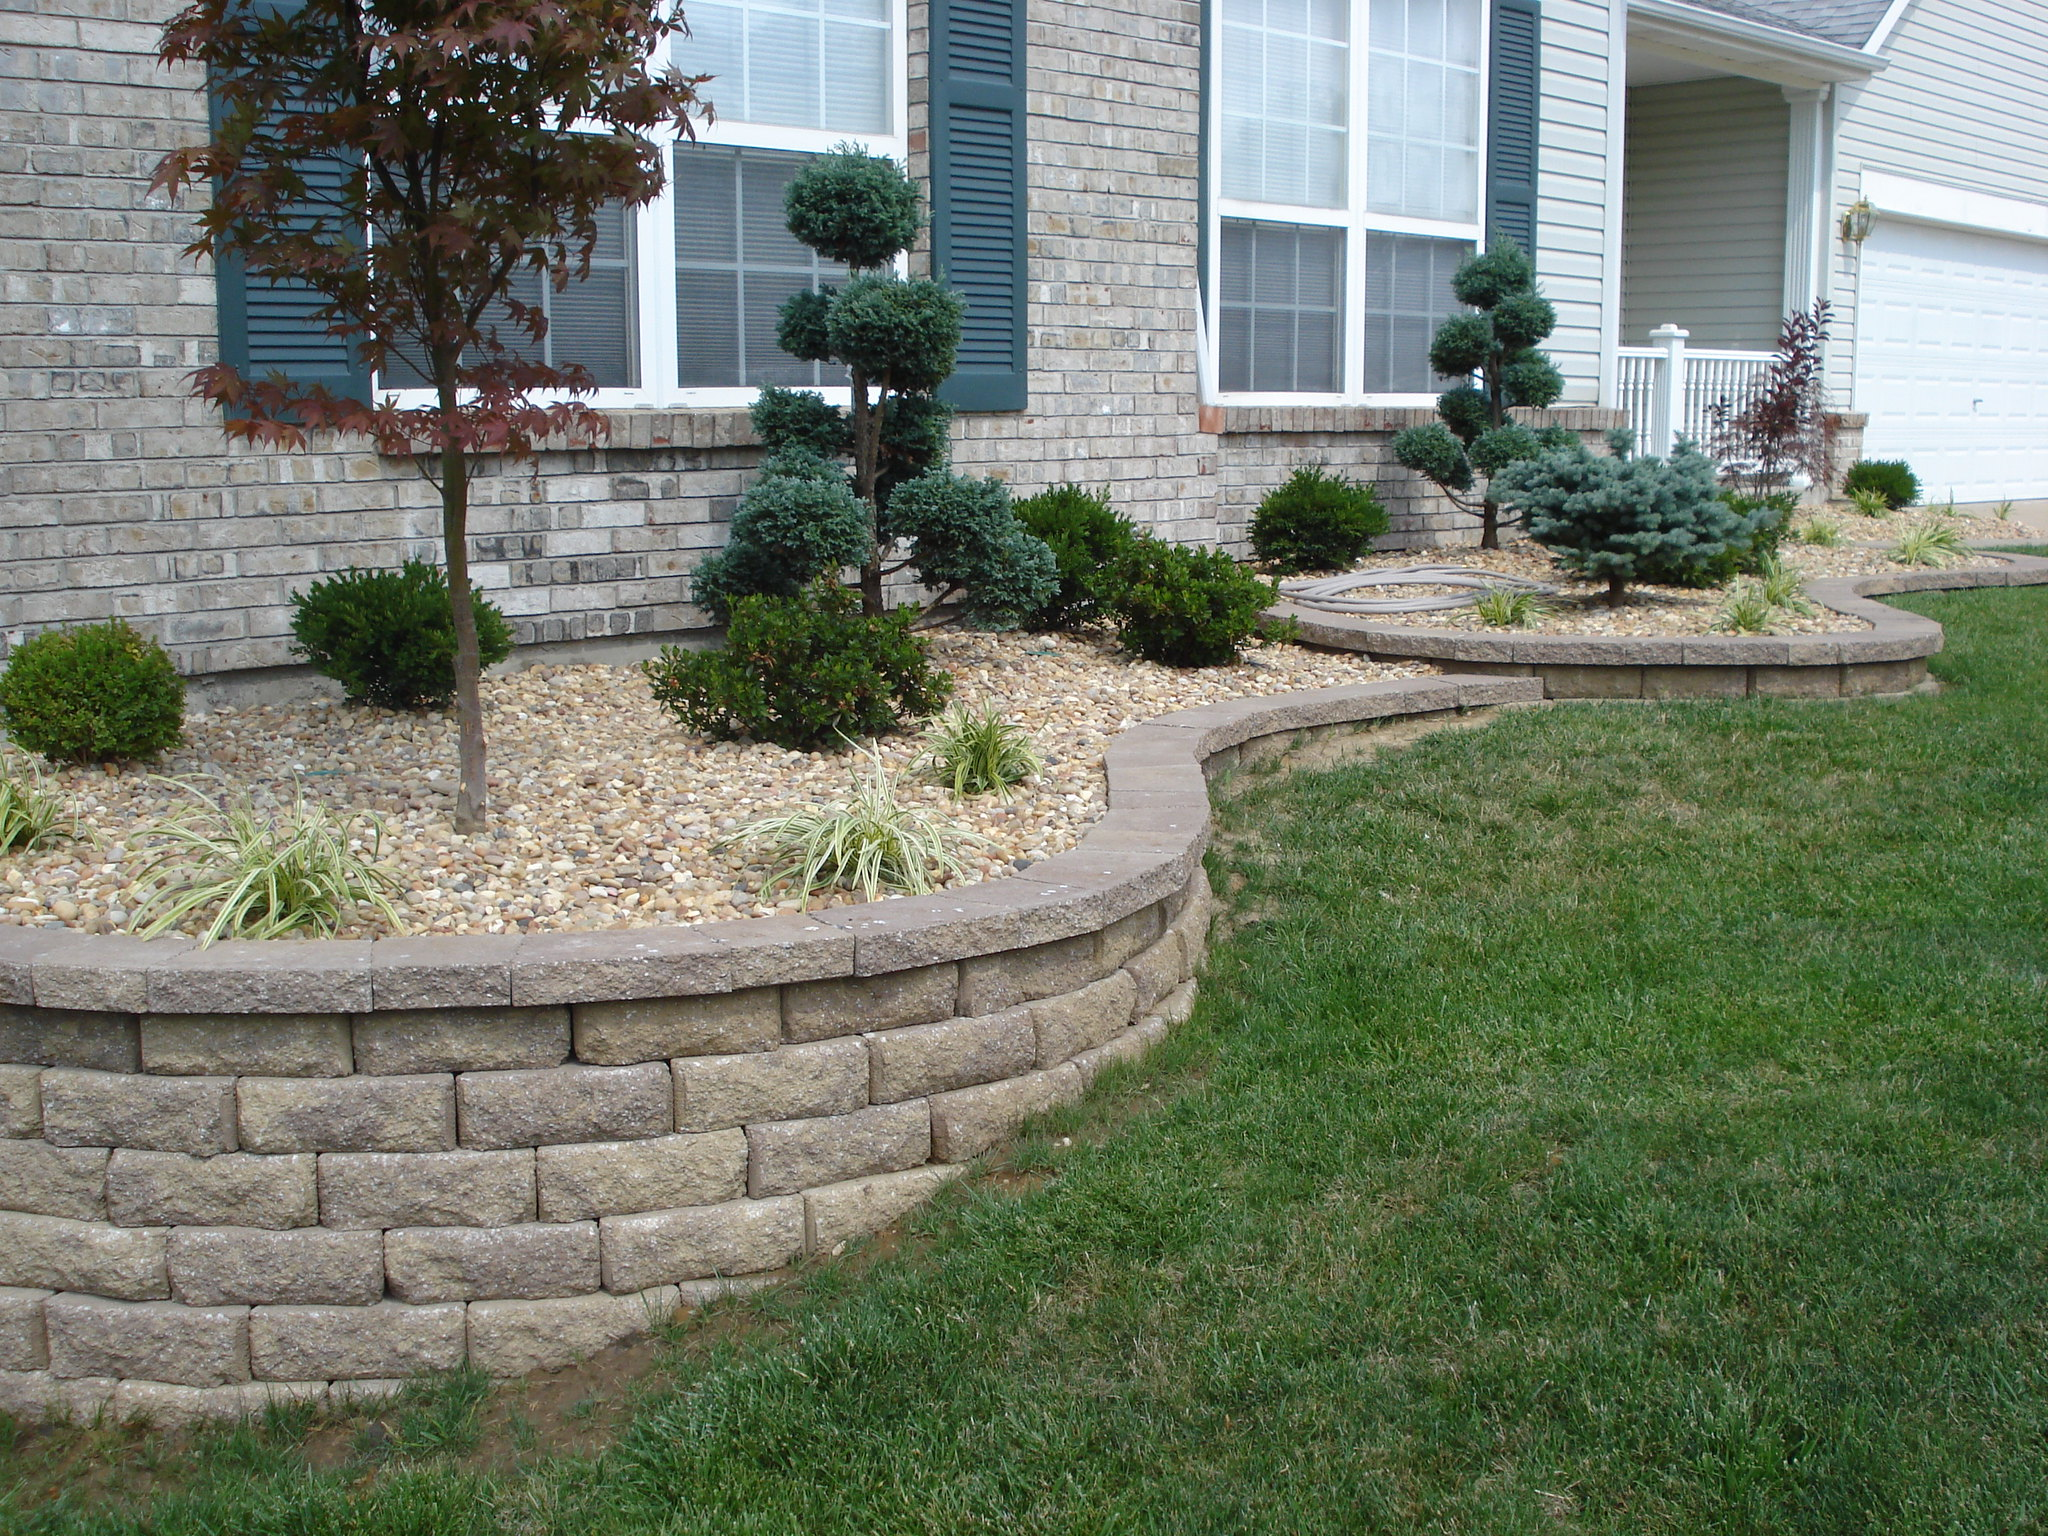 Front Yard Retaining Walls & Landscaping | Flickr - Photo ...